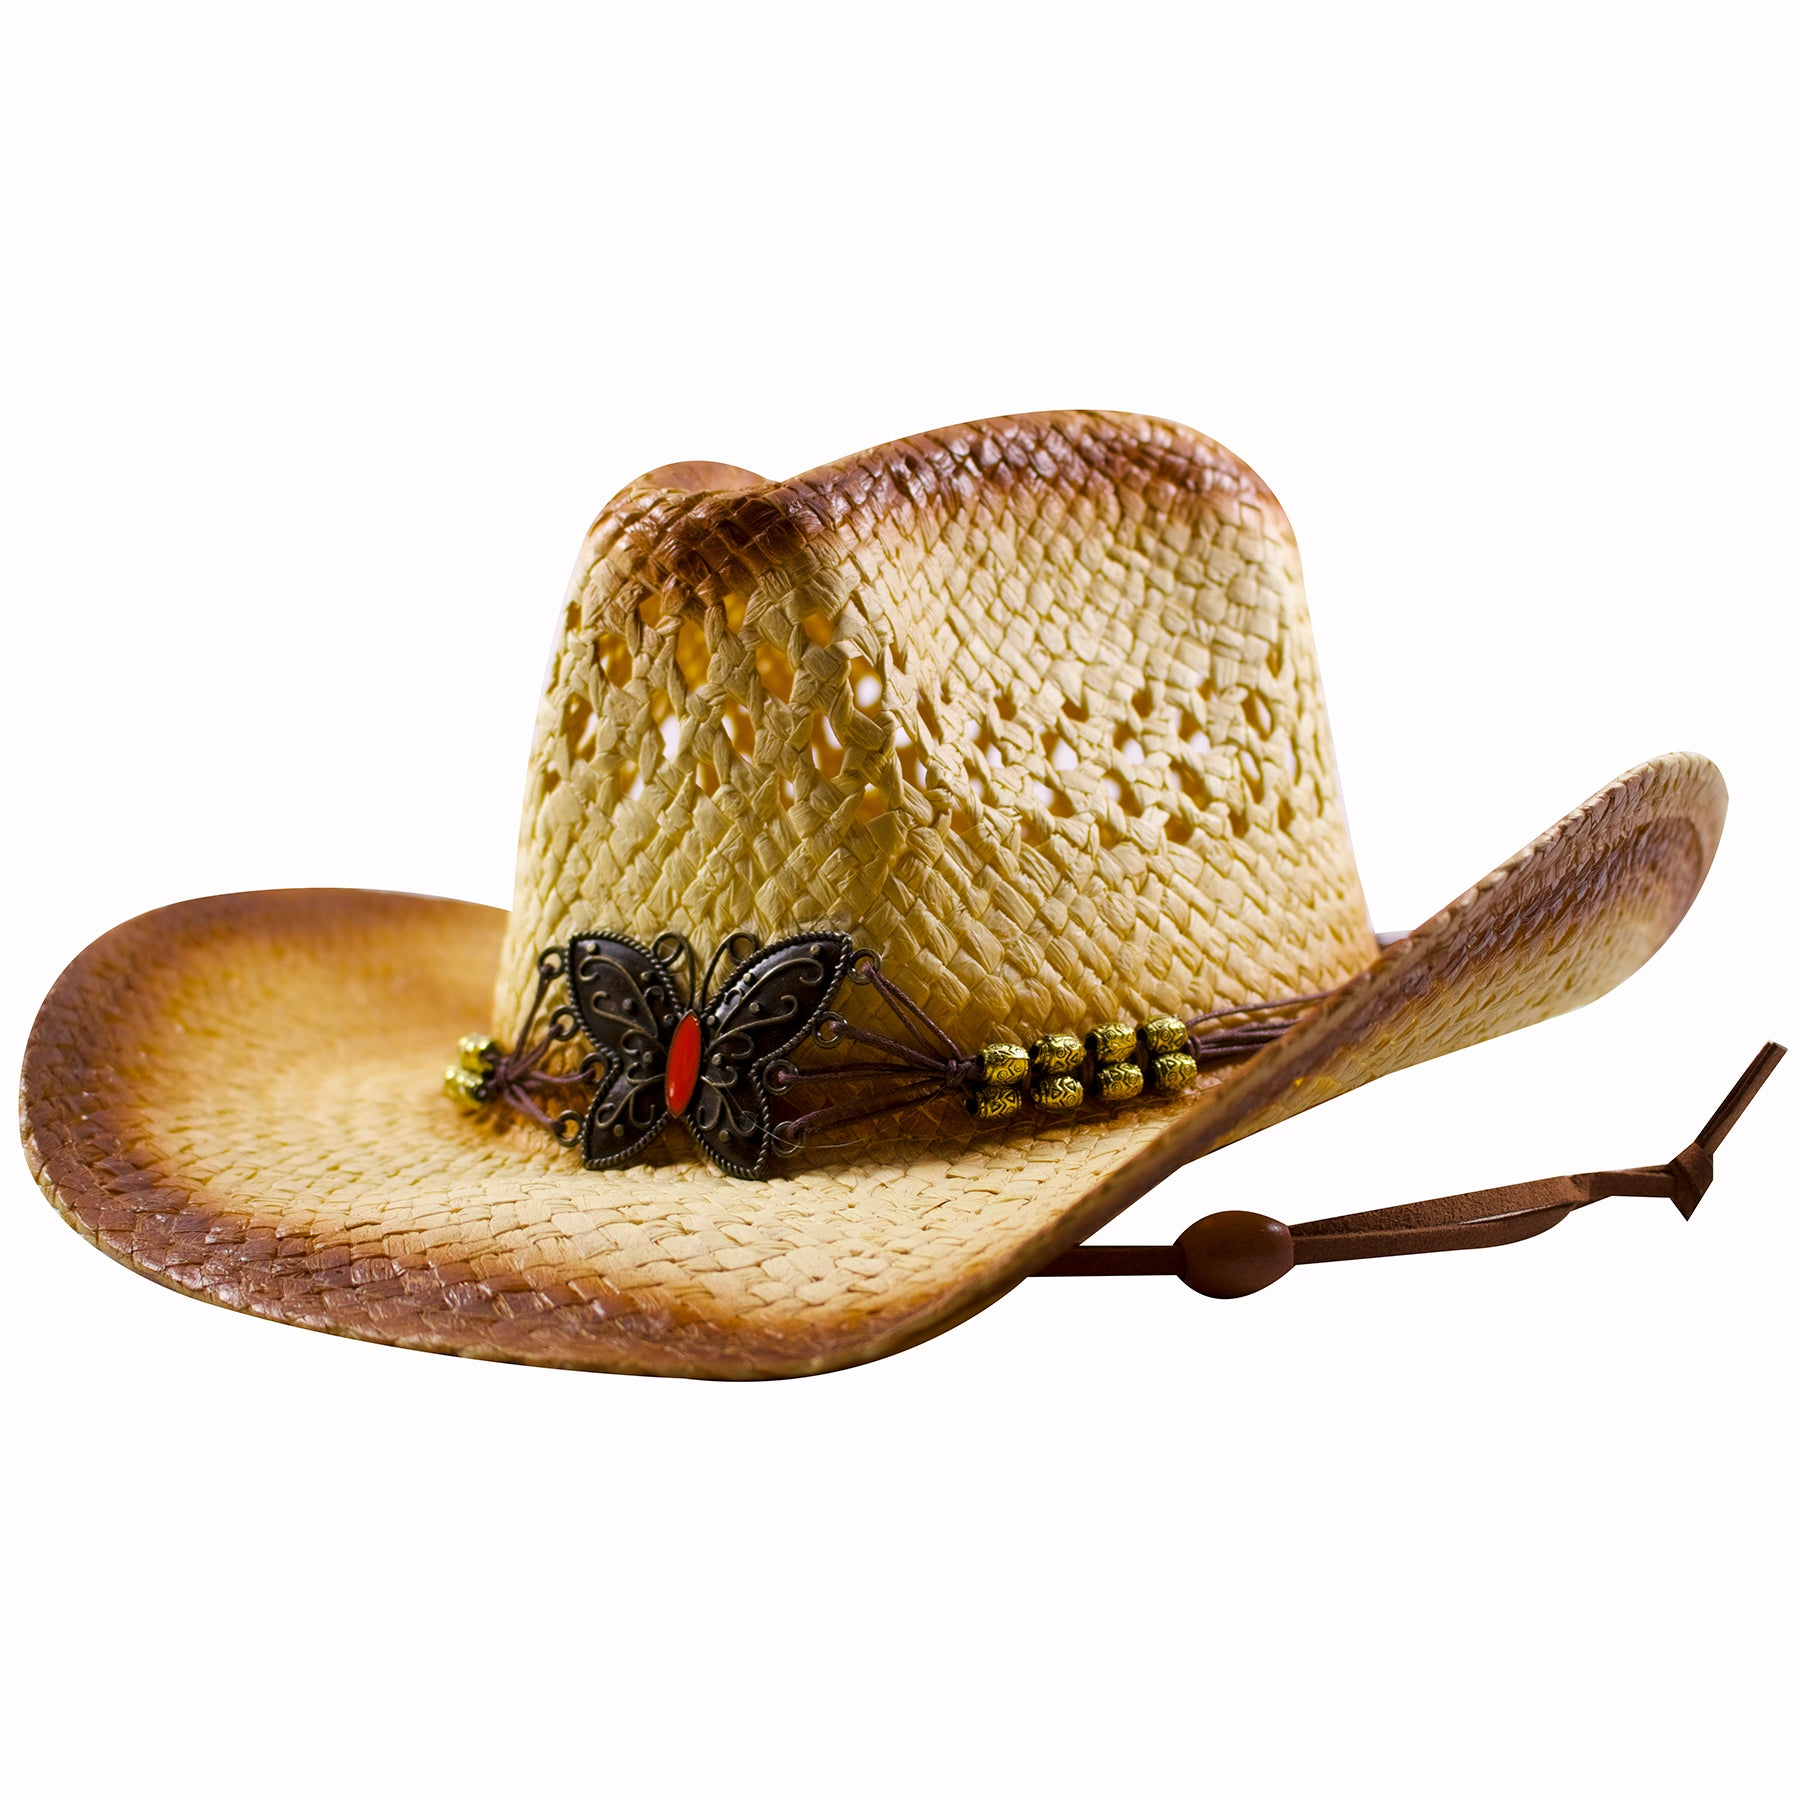 083eb3b1972 ... the butterfly emblem straw cowboy hat has holes in the straw for  comfort and breathability and ...